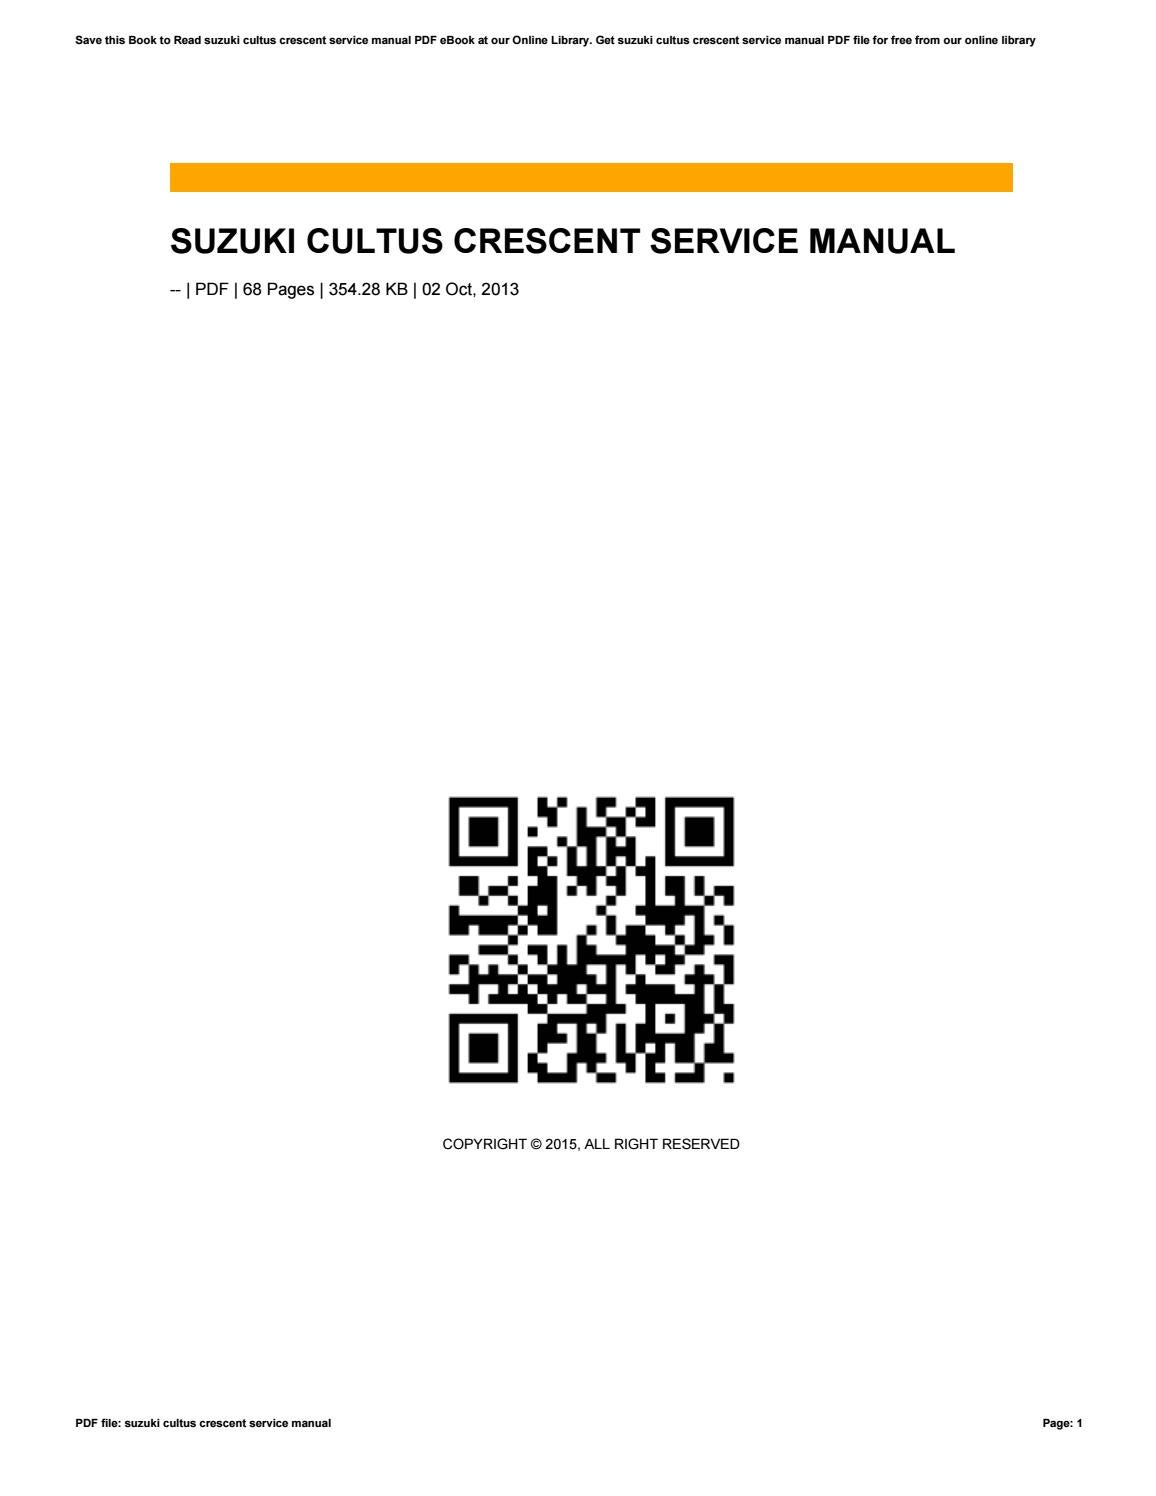 suzuki esteem 1999 owners manual open source user manual u2022 rh dramatic varieties com 1998 Volvo V70 Wagon 1998 Volvo V70 Problems